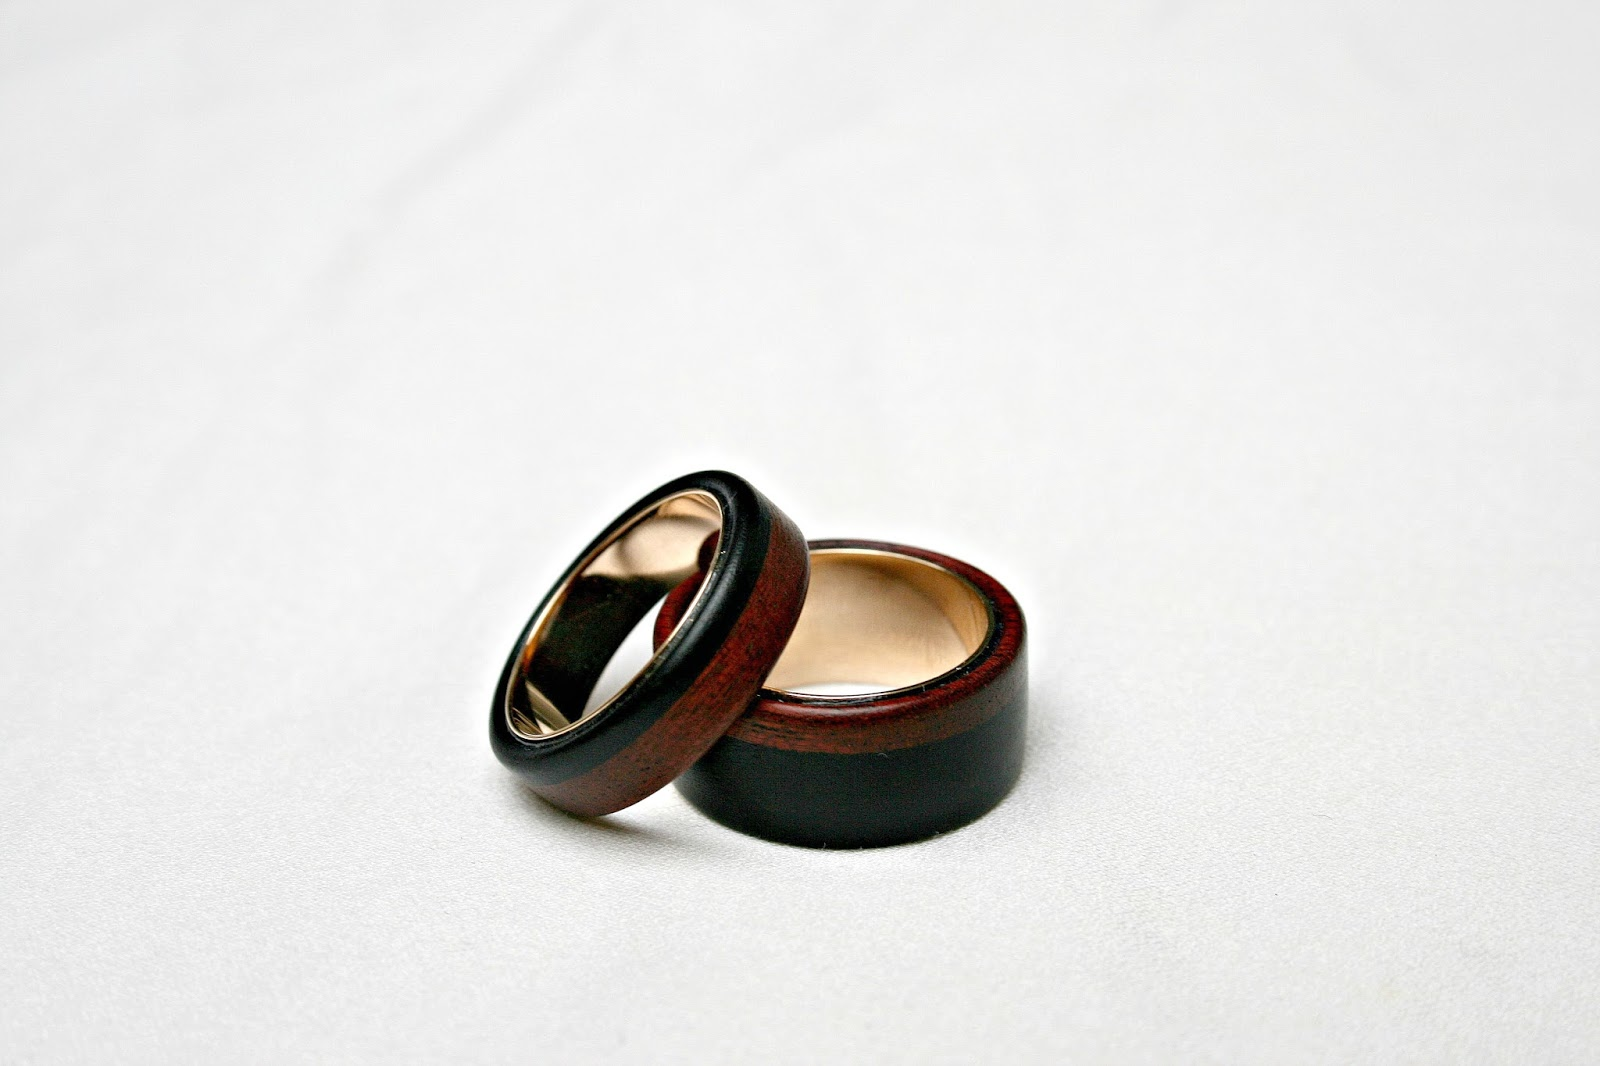 say unique very and bands ring what considered wedding individuals symbol rings a pin between mens love union in two are does for magnetic your sweet bold you weddings about